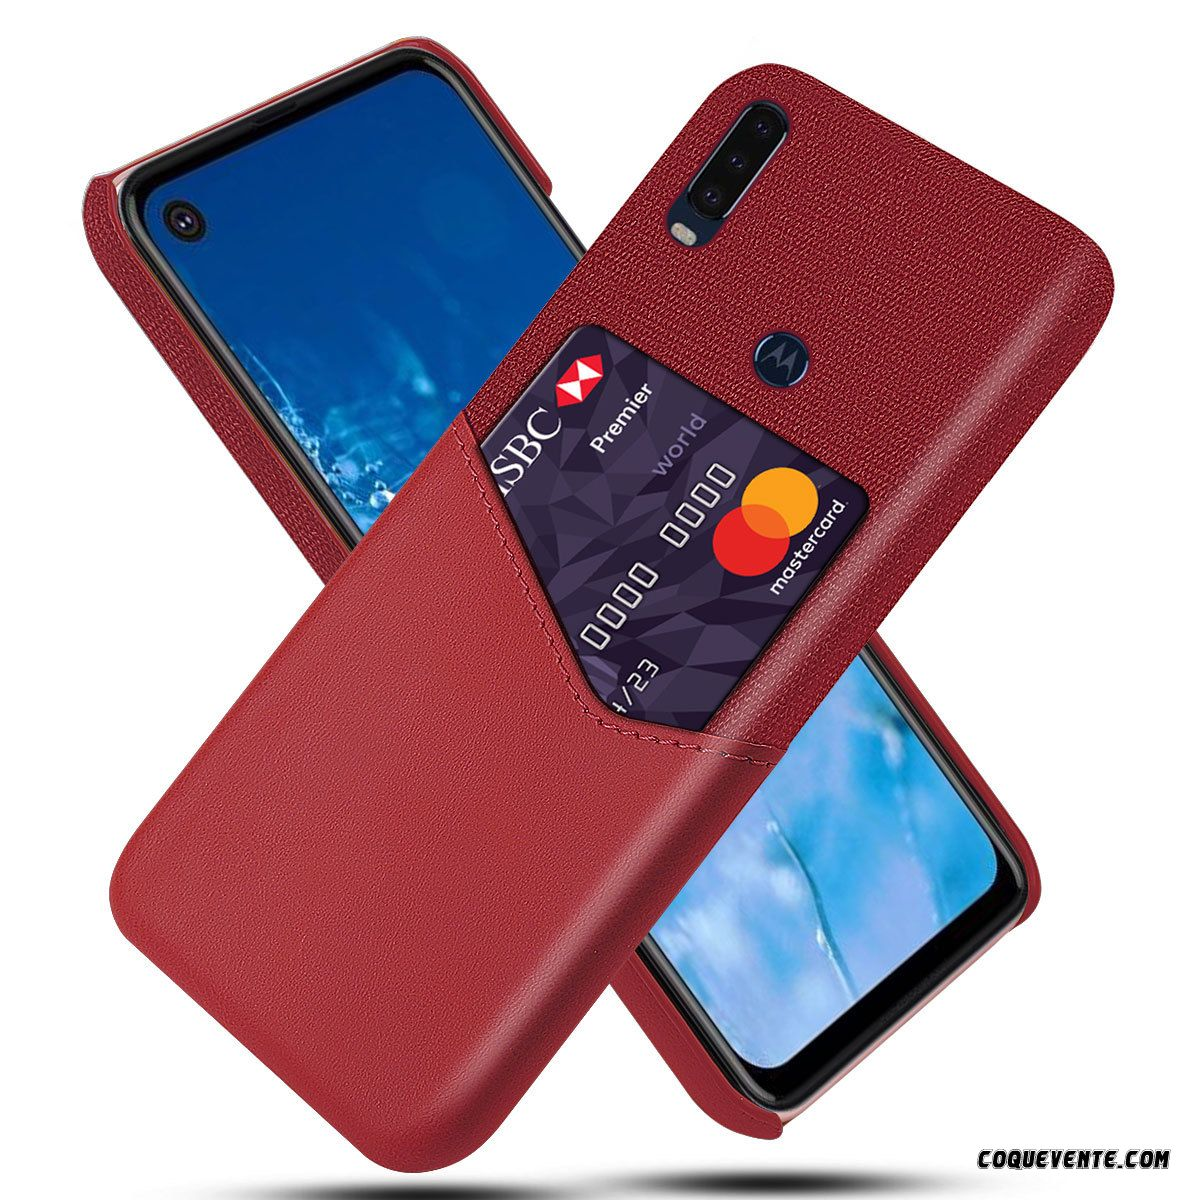 Coque Motorola One Action, Coque Motorola One Action Metal, Etui Tel Mobile Pas Cher Kaki